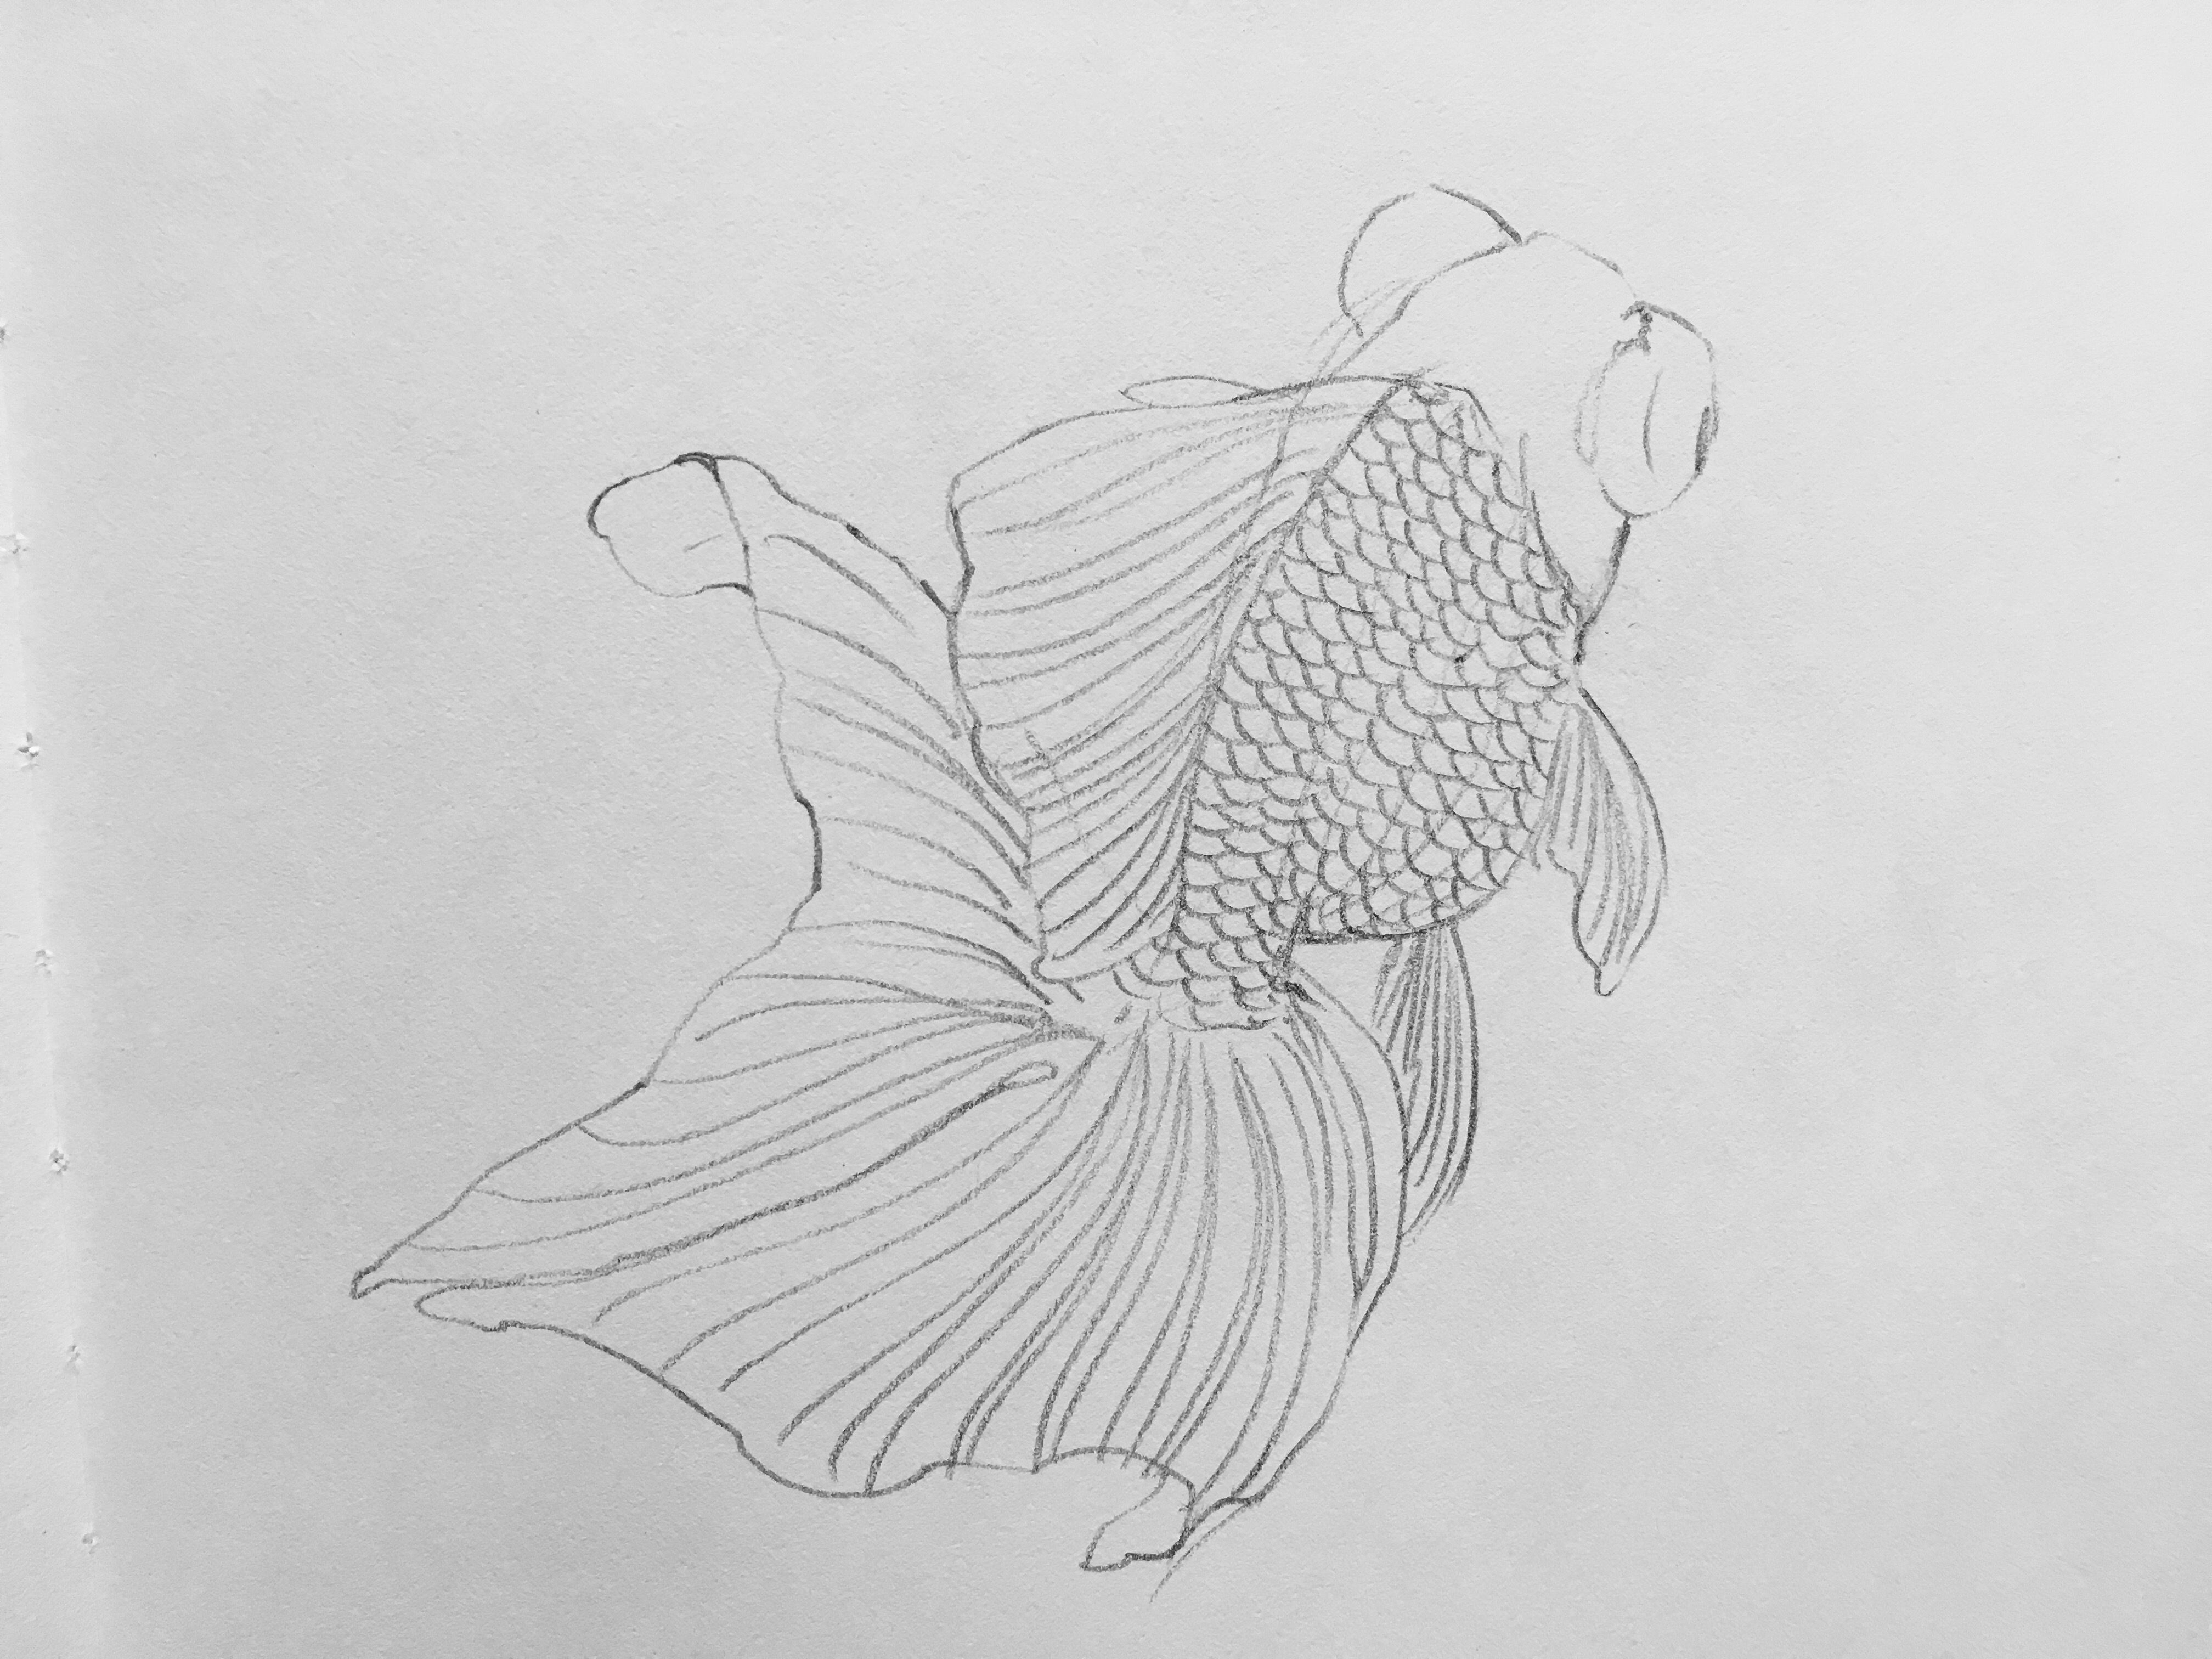 Uncategorized Goldfish Drawings pin by on gold fish pinterest goldfish and drawings care art tank water fairy inspiring artsy fartsy